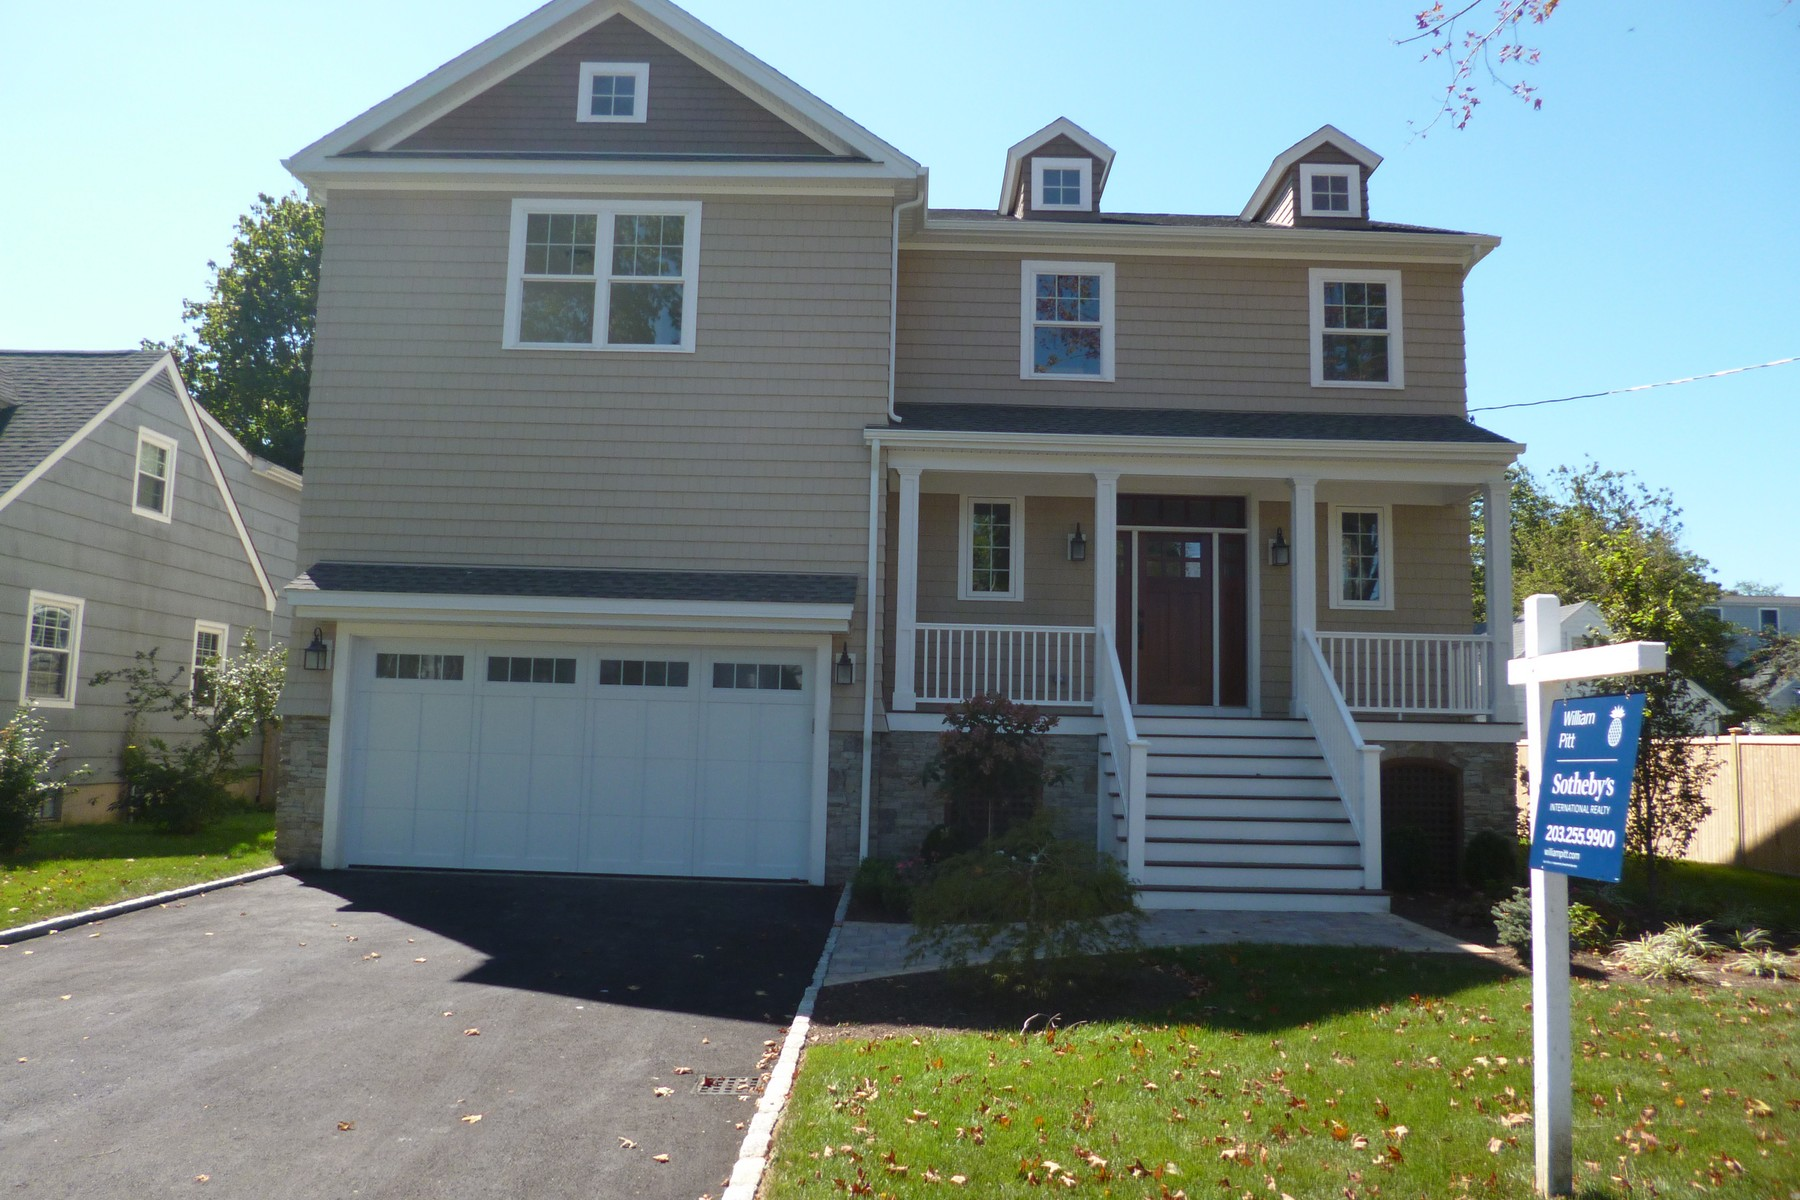 Single Family Home for Sale at BEACH AREA - NEW CONSTRUCTION!! 292 Pratt Street Fairfield, Connecticut, 06824 United States